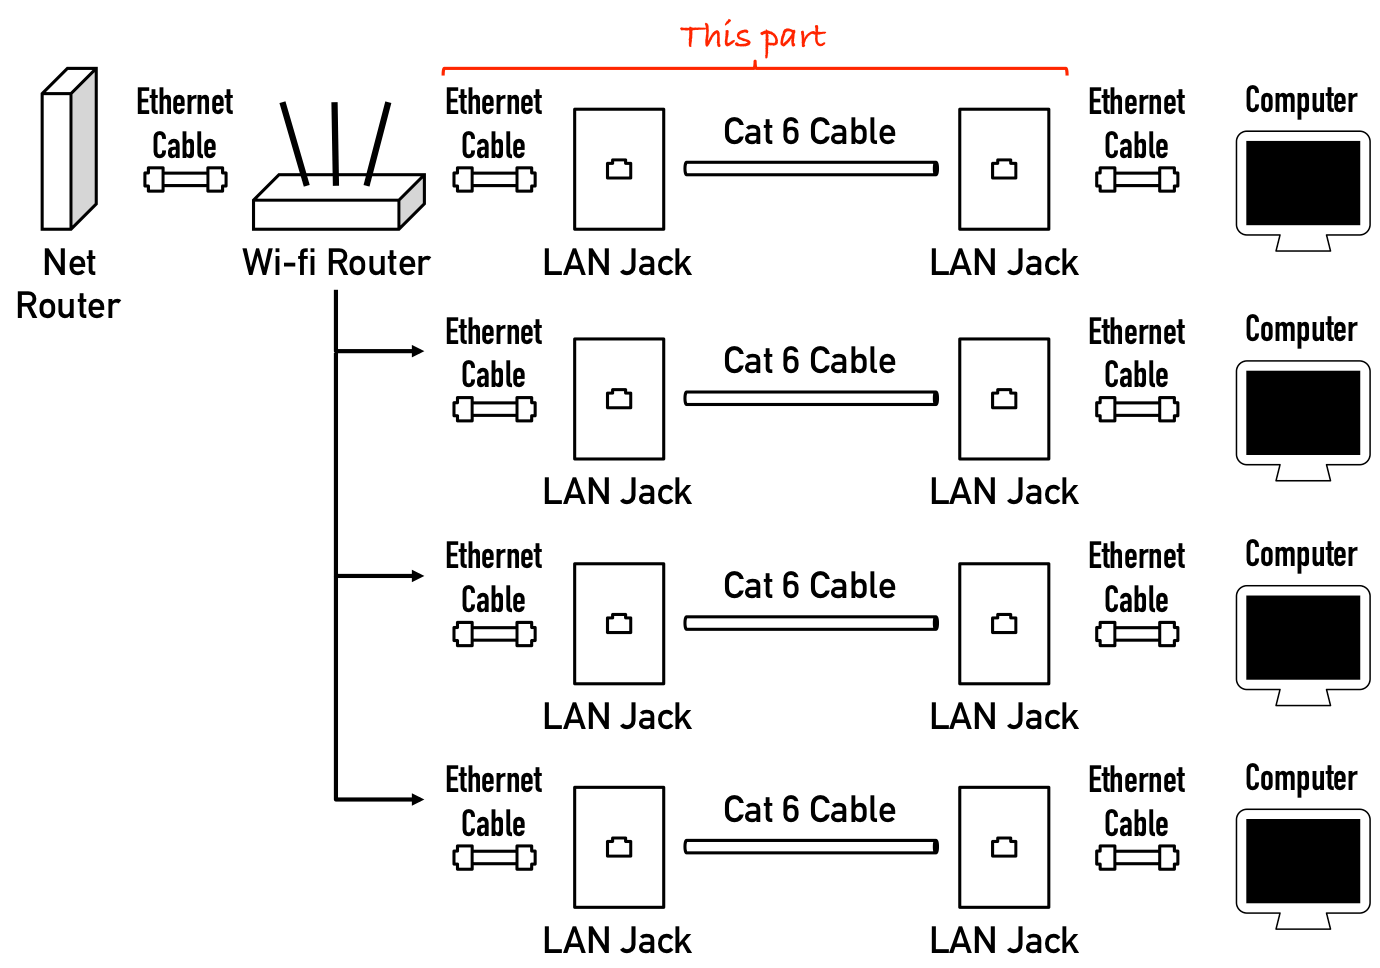 hight resolution of internet cable wiring diagram wiring diagram comcast cable internet wiring diagram how do i run wired